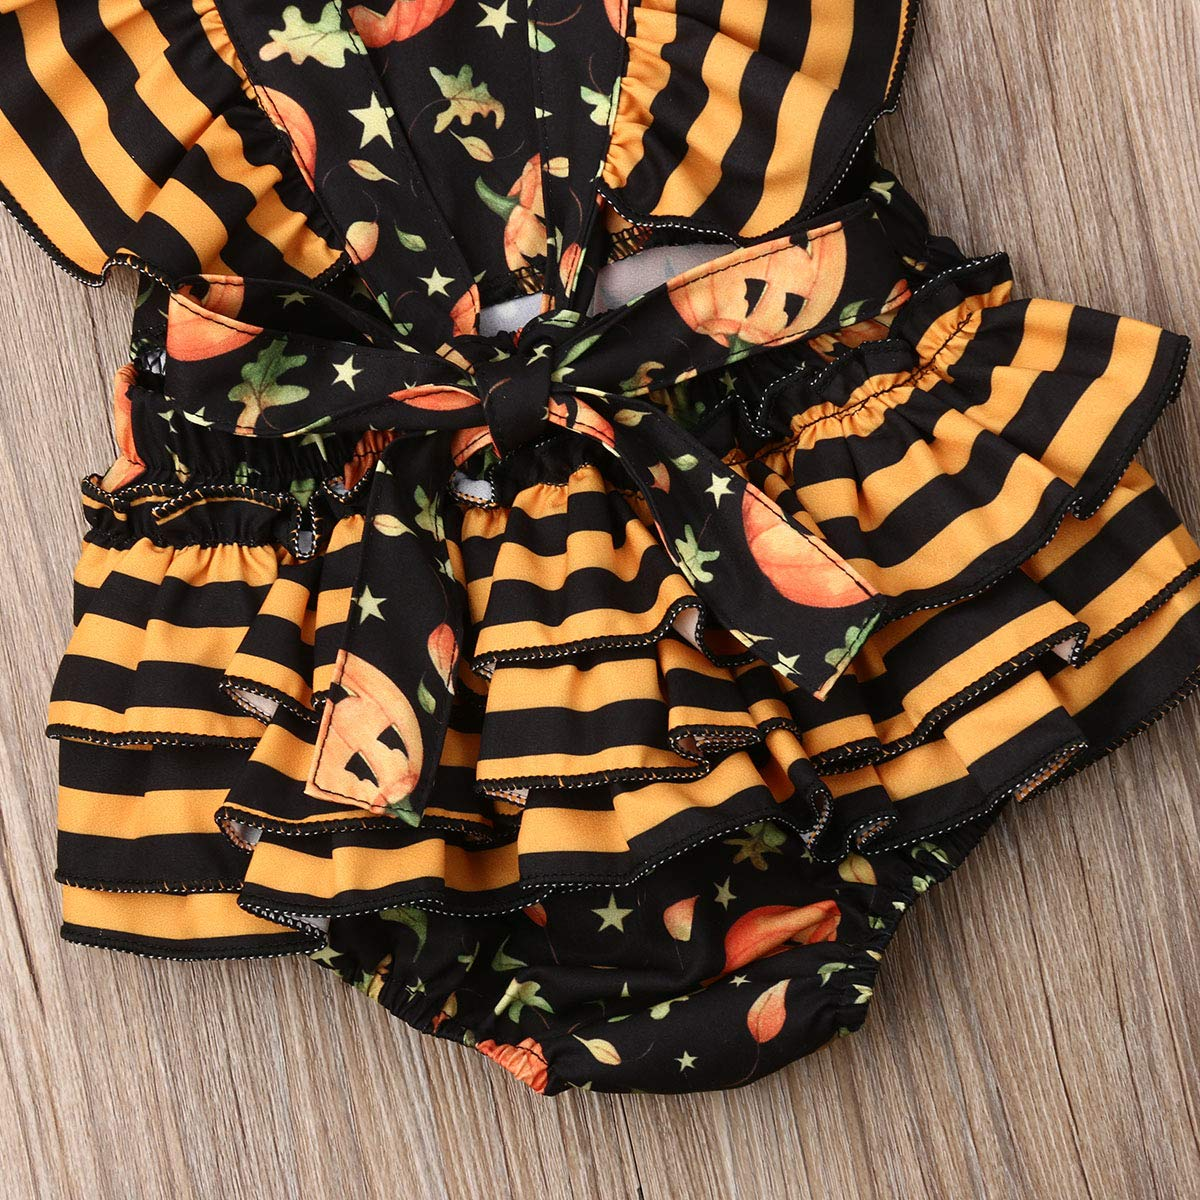 Dourbesty Toddler Infant Baby Halloween Romper Outfits Costumes Sleeveless Pumpkin Jumpsuit Bodysuit,3-24M